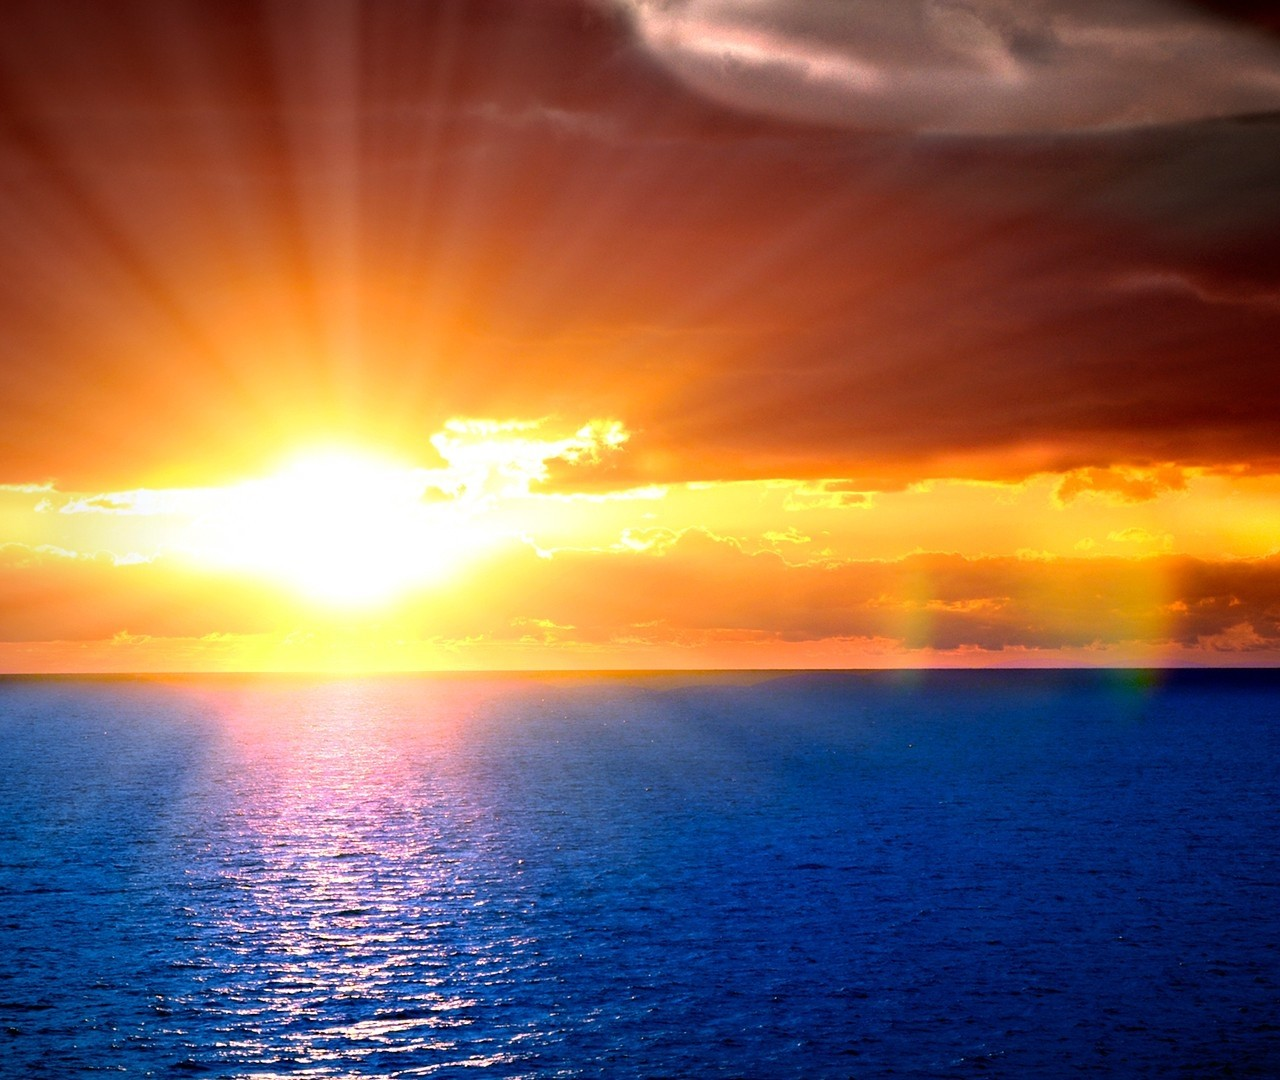 sun beams in Ocean view HD Wallpaper 9285 1280x1080